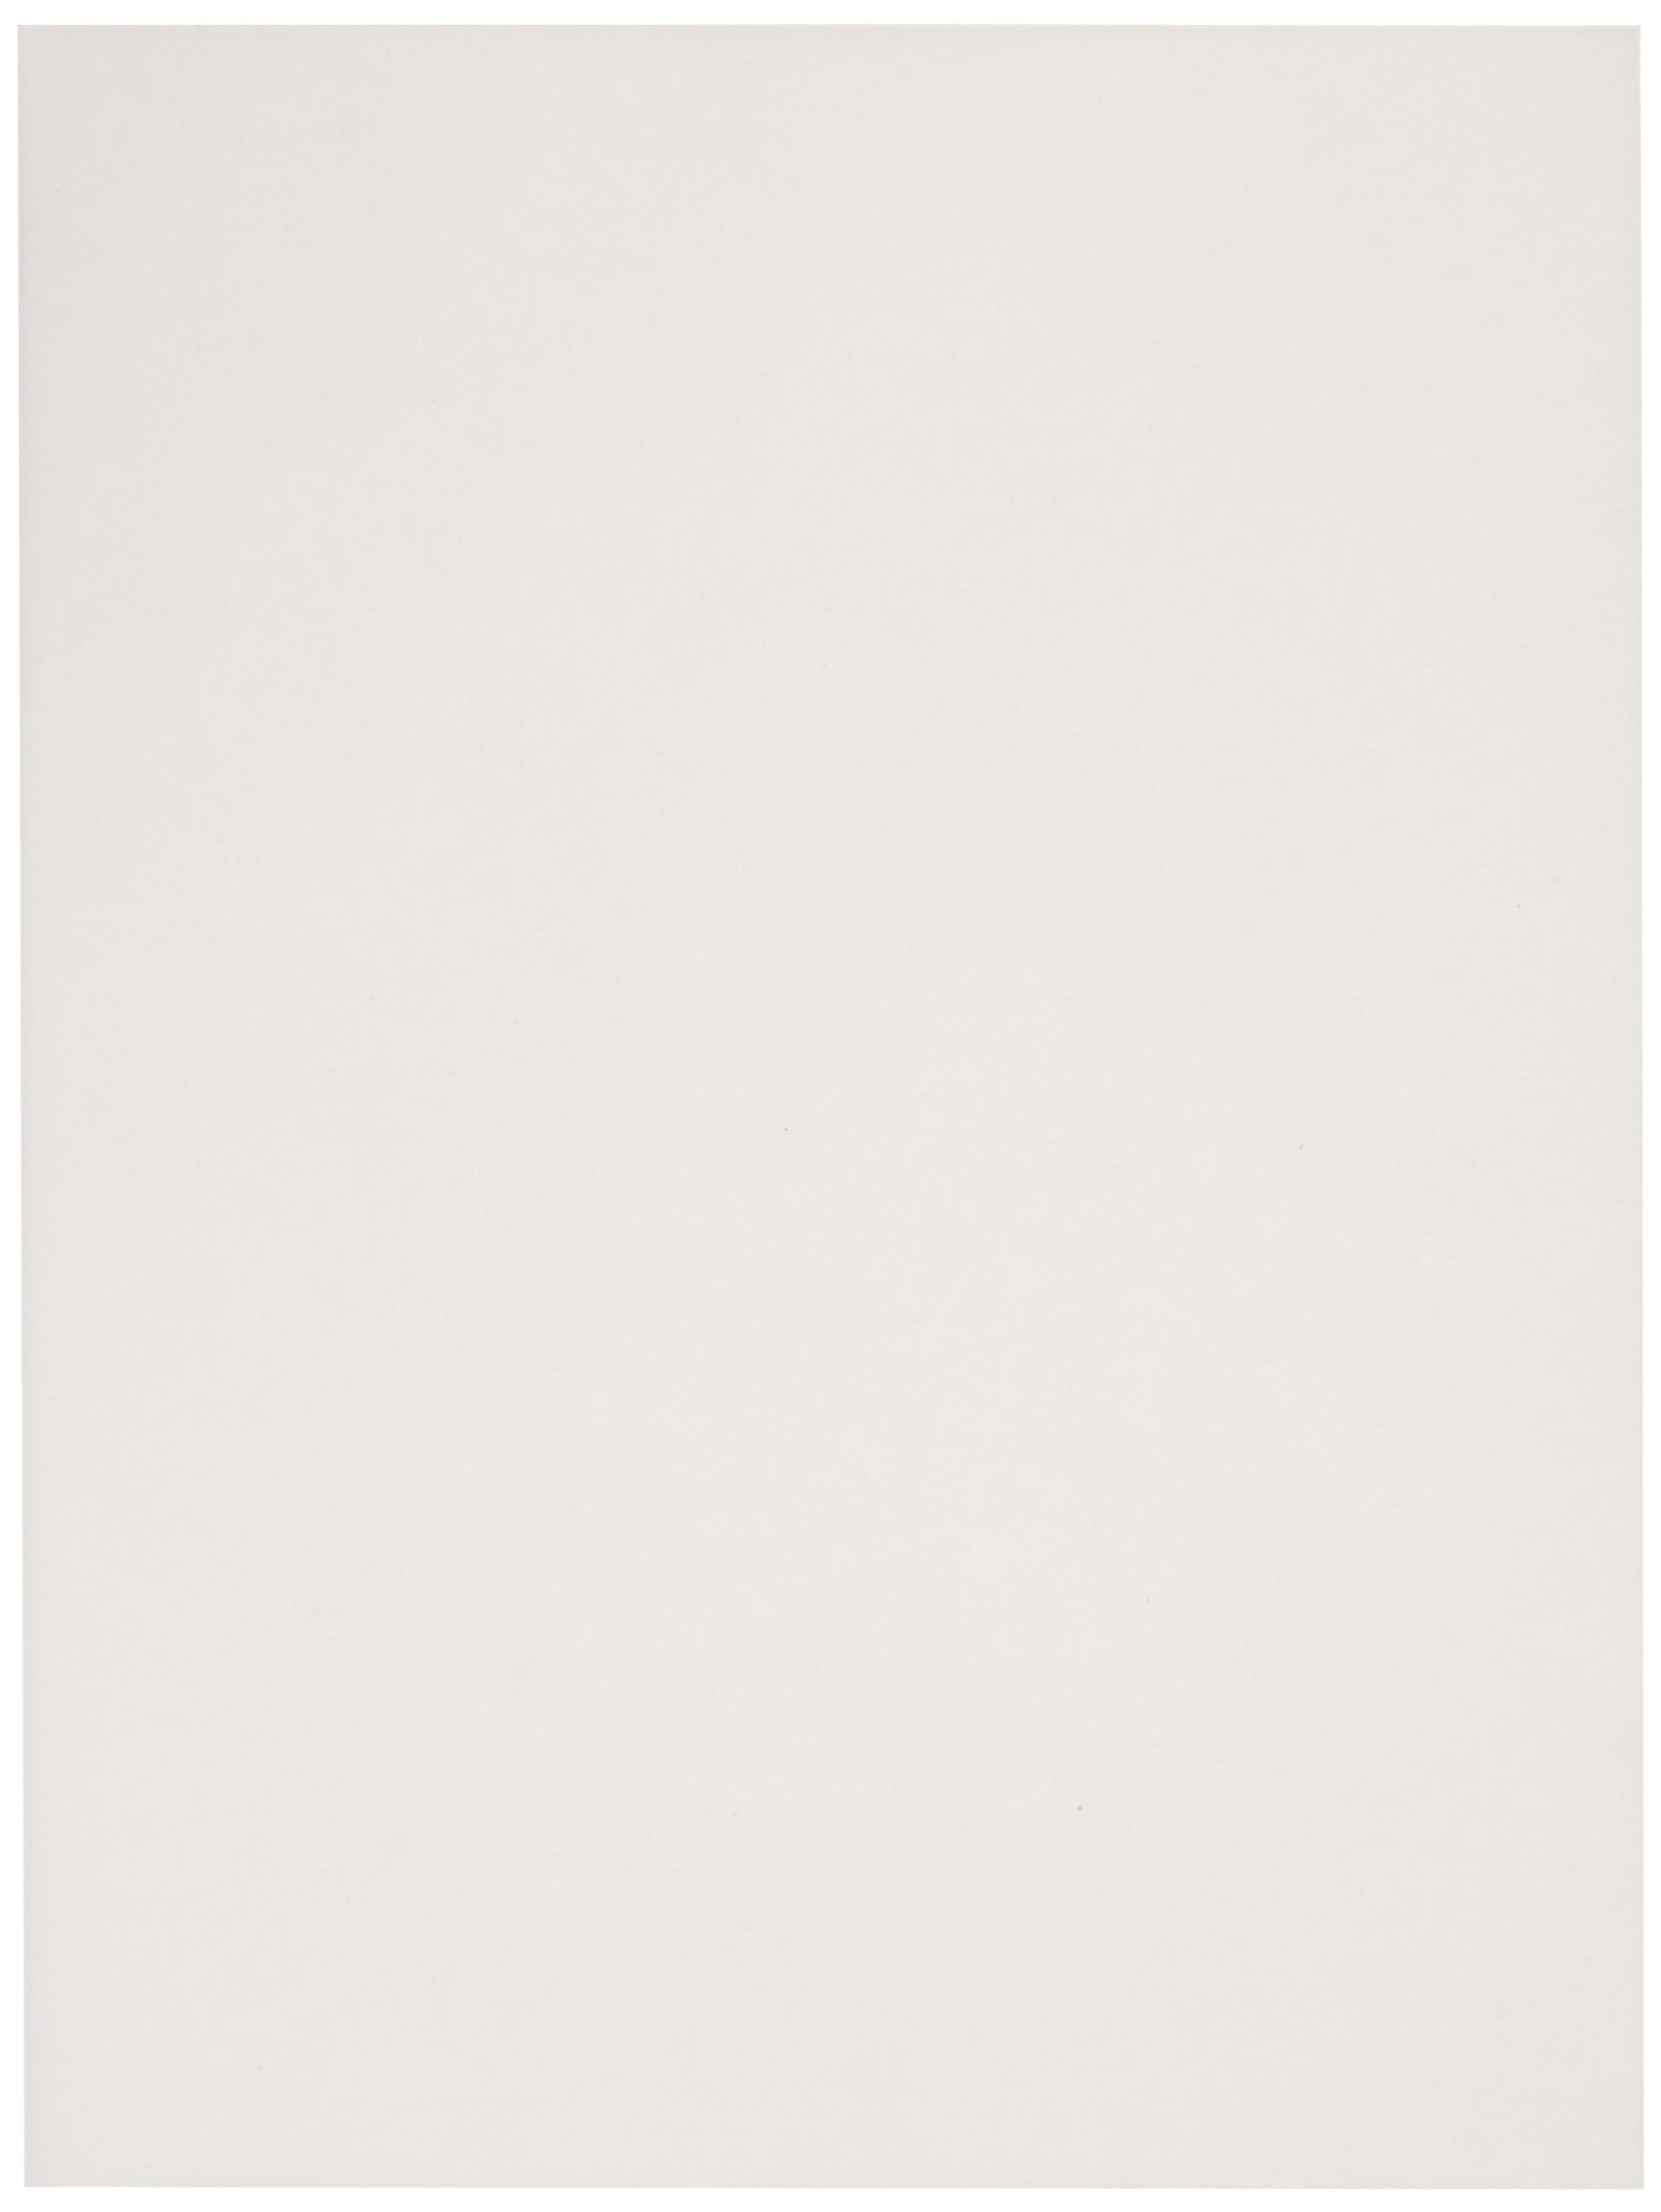 Sax Sulphite Drawing Paper, 70 lb, 9 x 12 Inches, Extra-White, Pack of 500 - 206309 by Sax